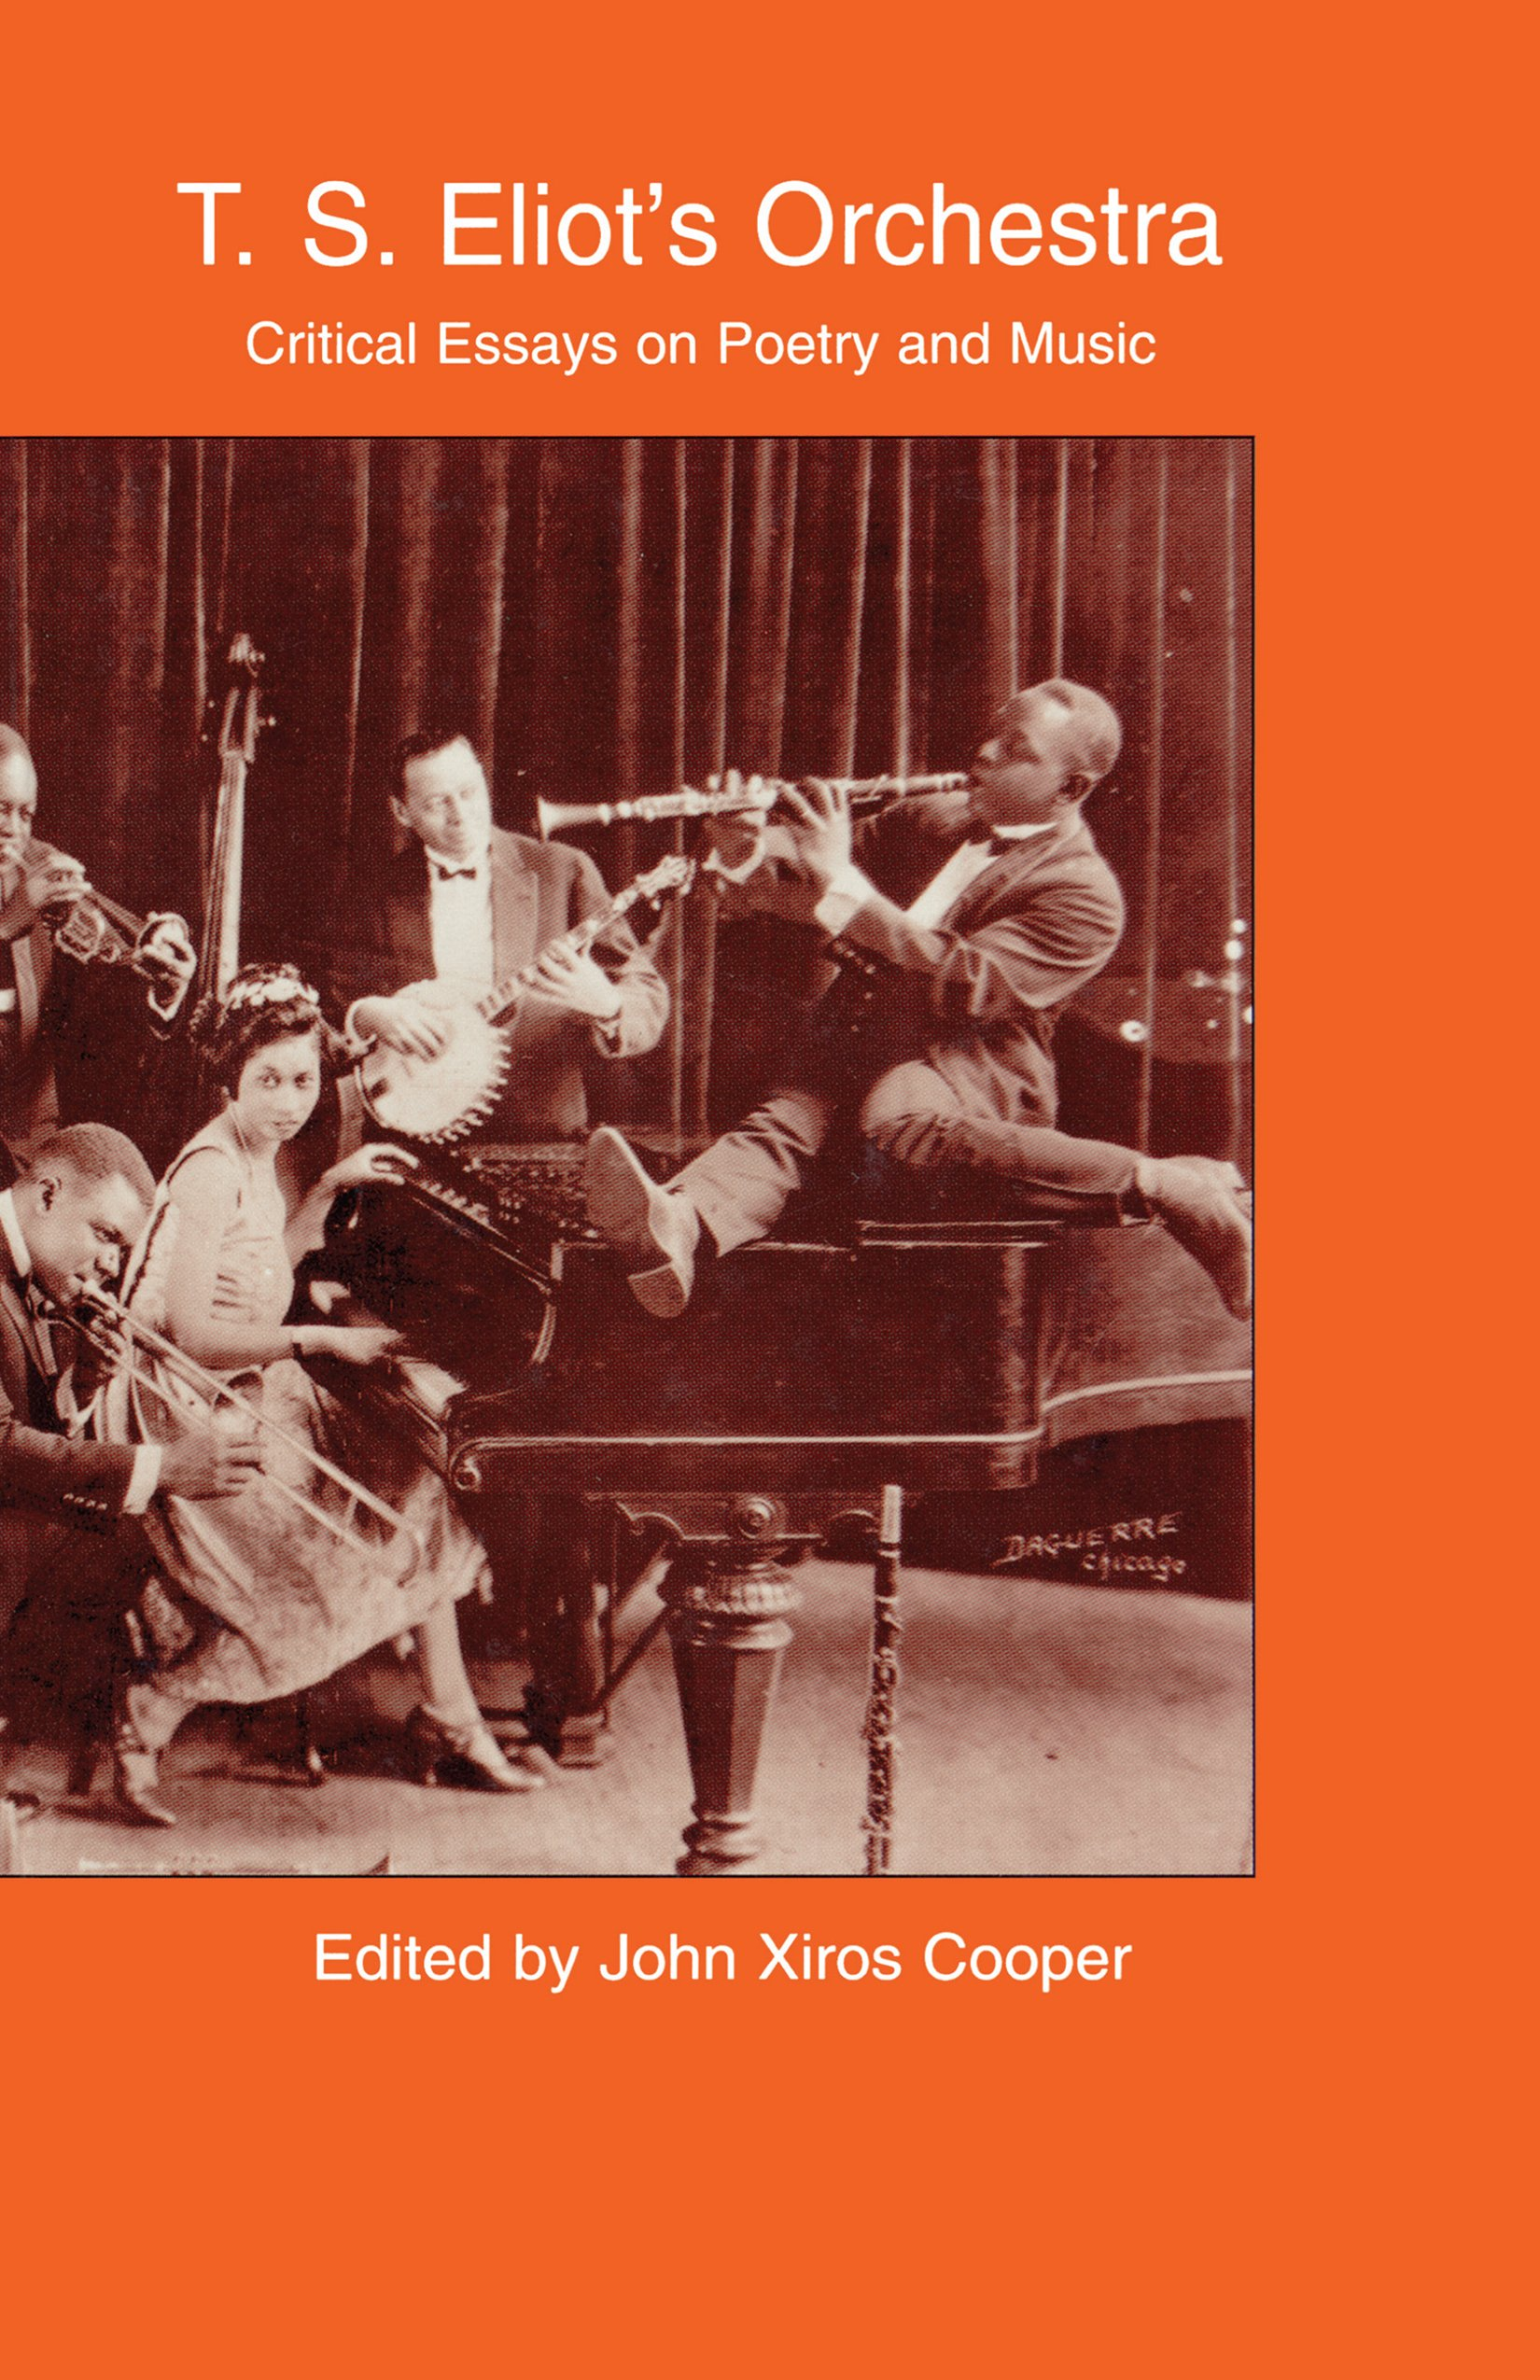 T.S. Eliot's Orchestra: Critical Essays on Poetry and Music book cover